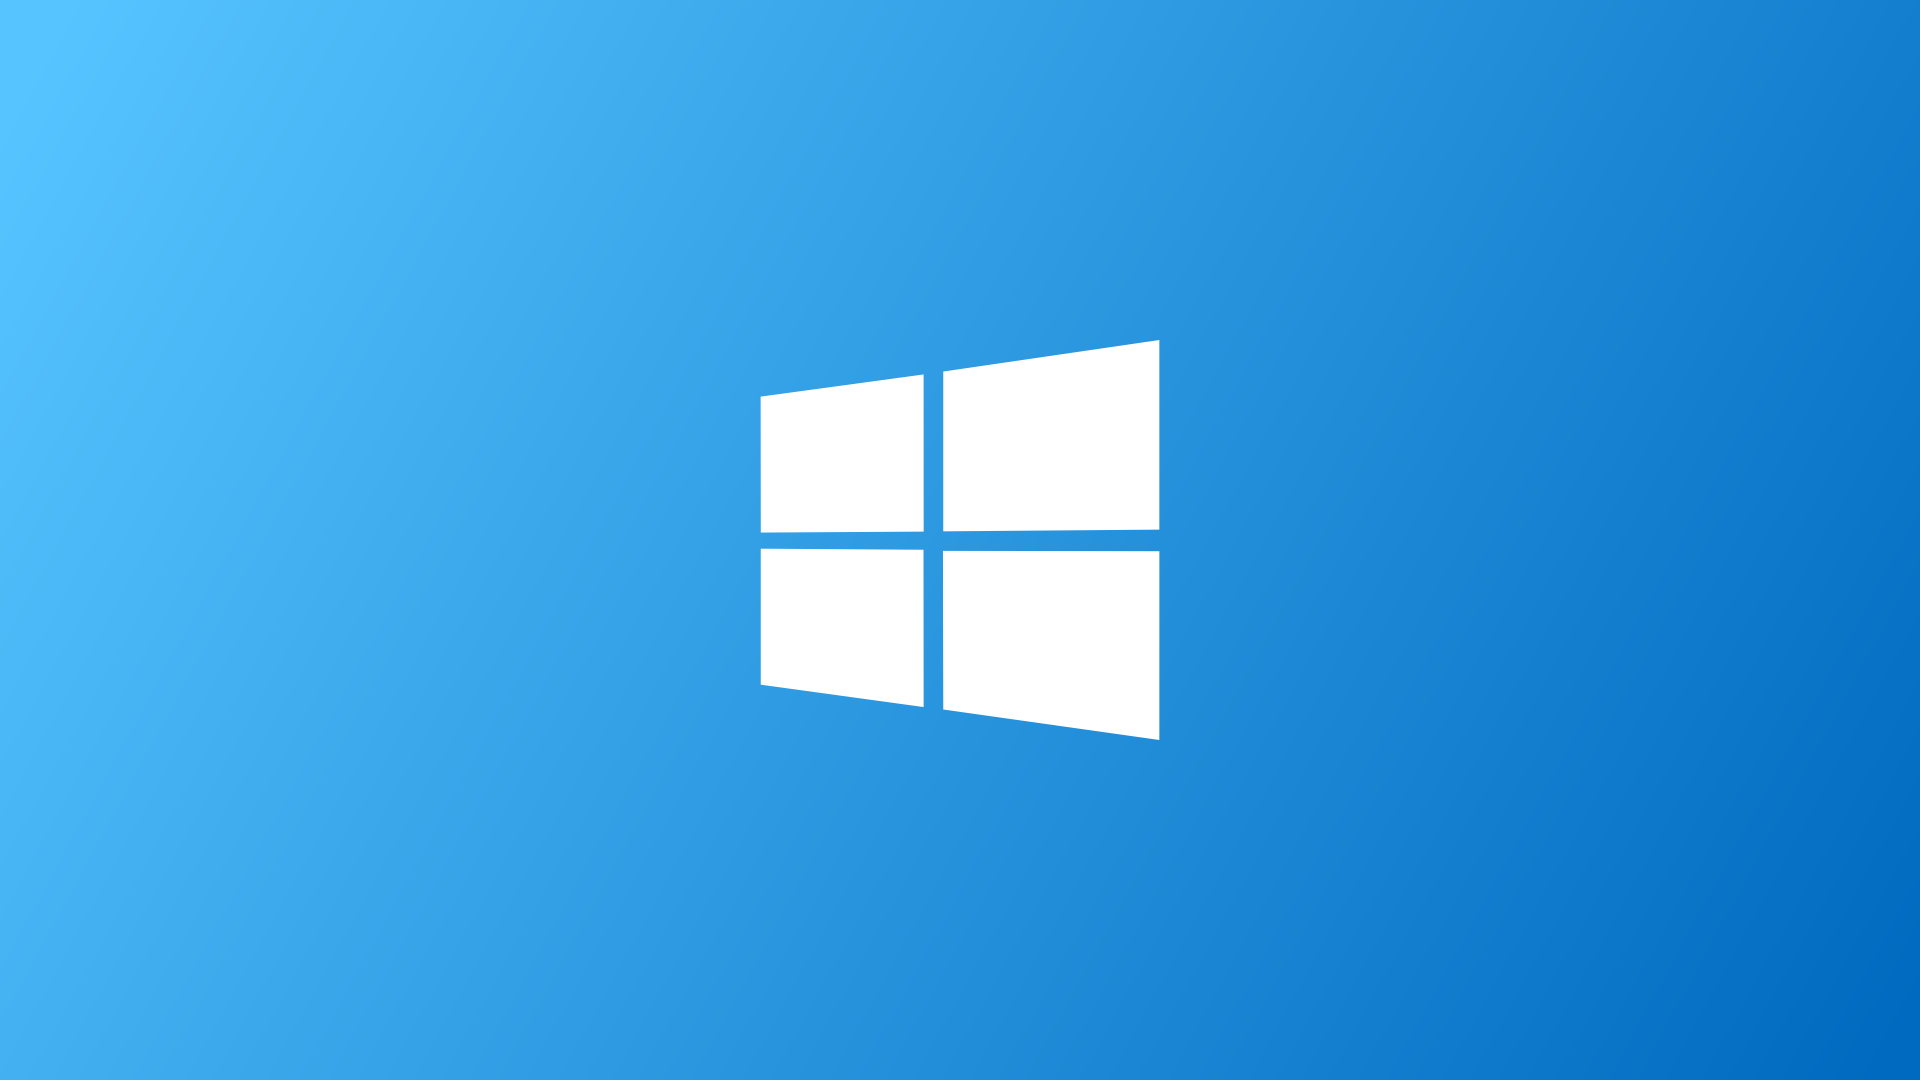 Windows 10 will arrive everywhere this summer